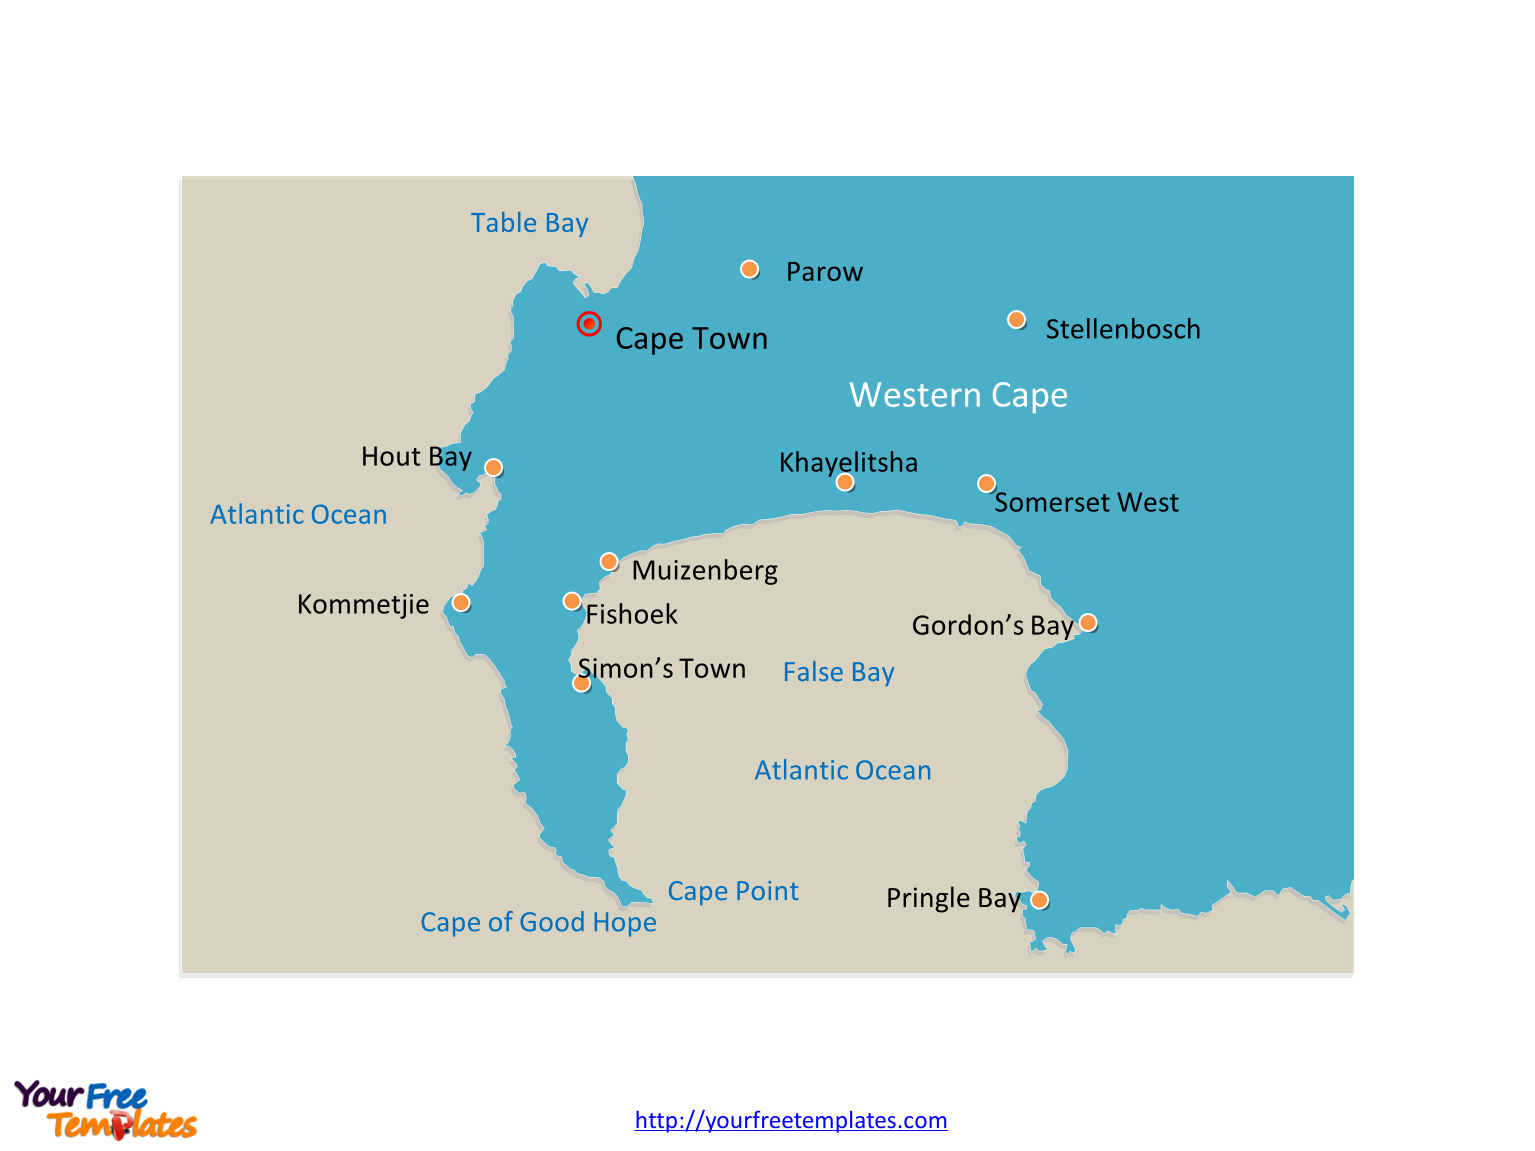 Cape of Good Hope map labeled with major cities